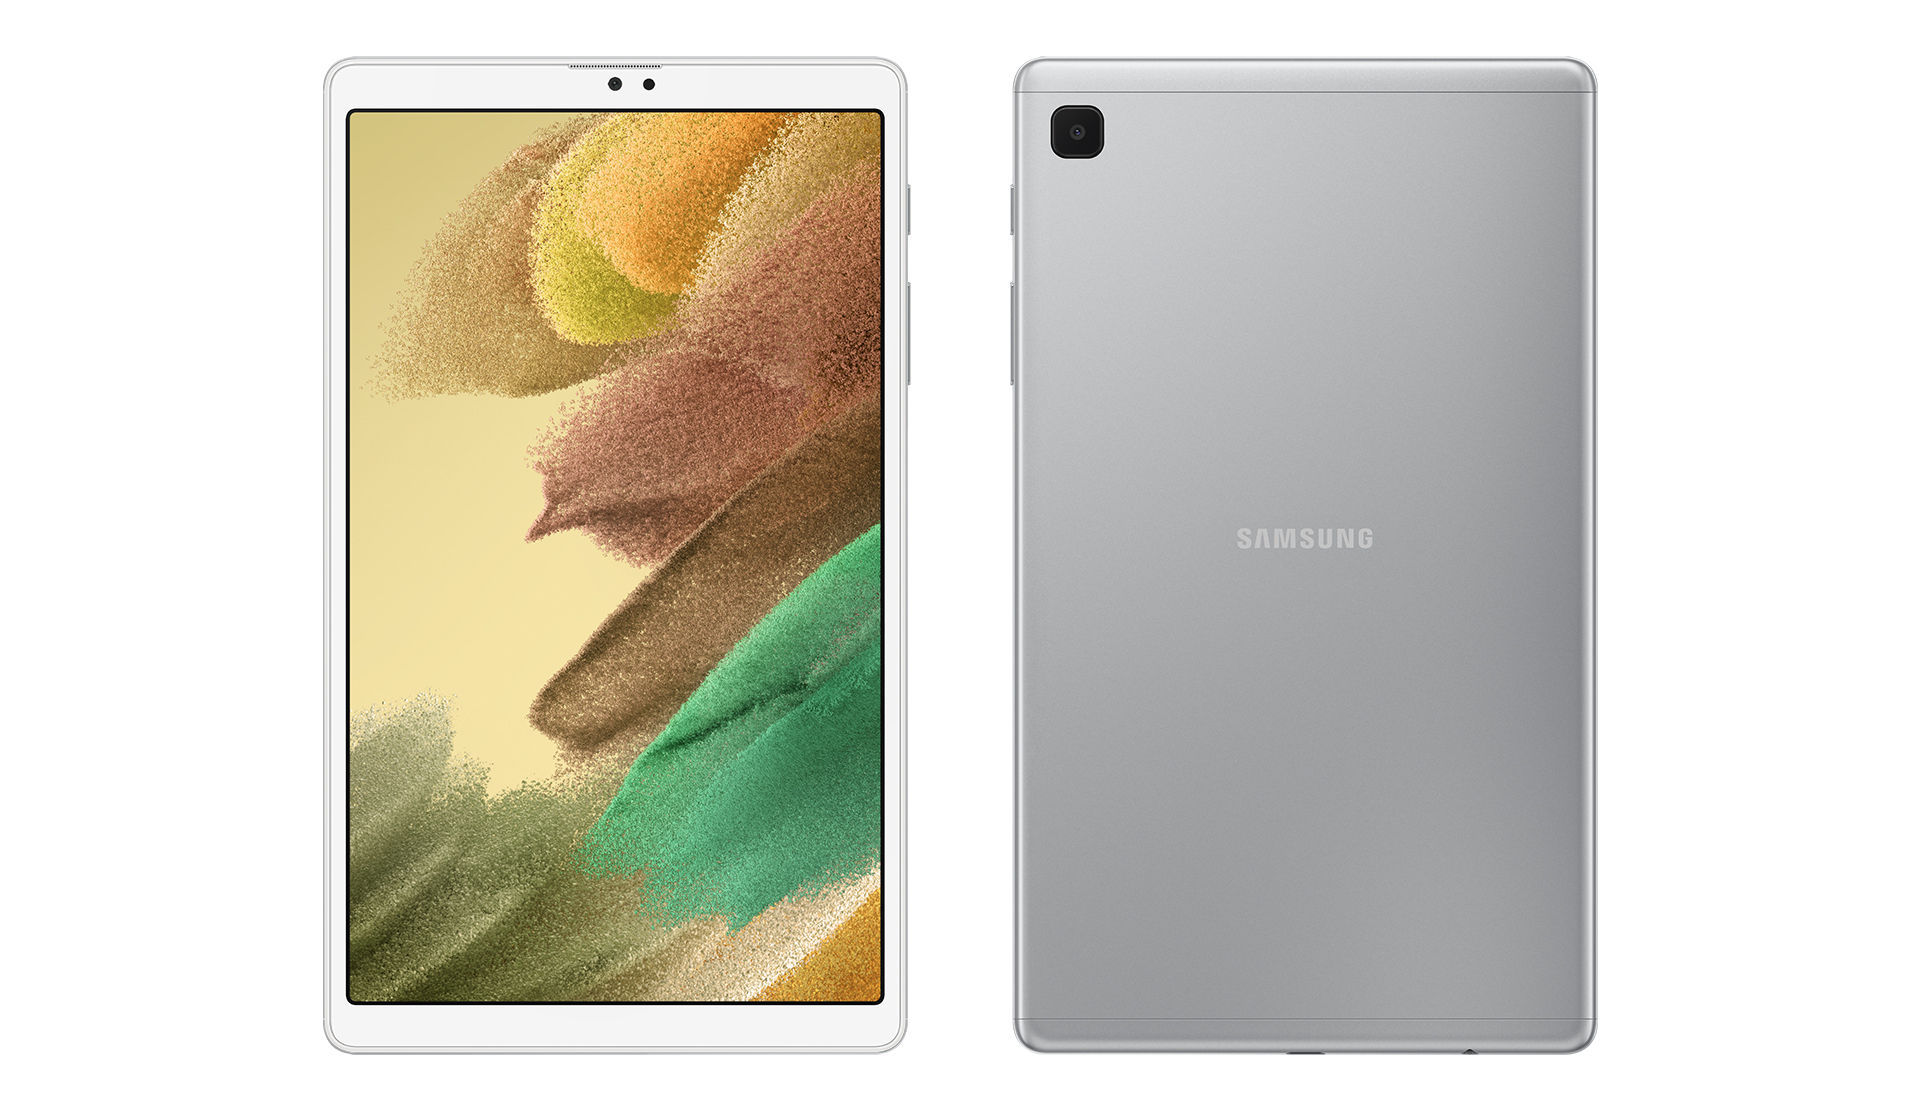 003_galaxy_tab_a7_lite_front_and_back